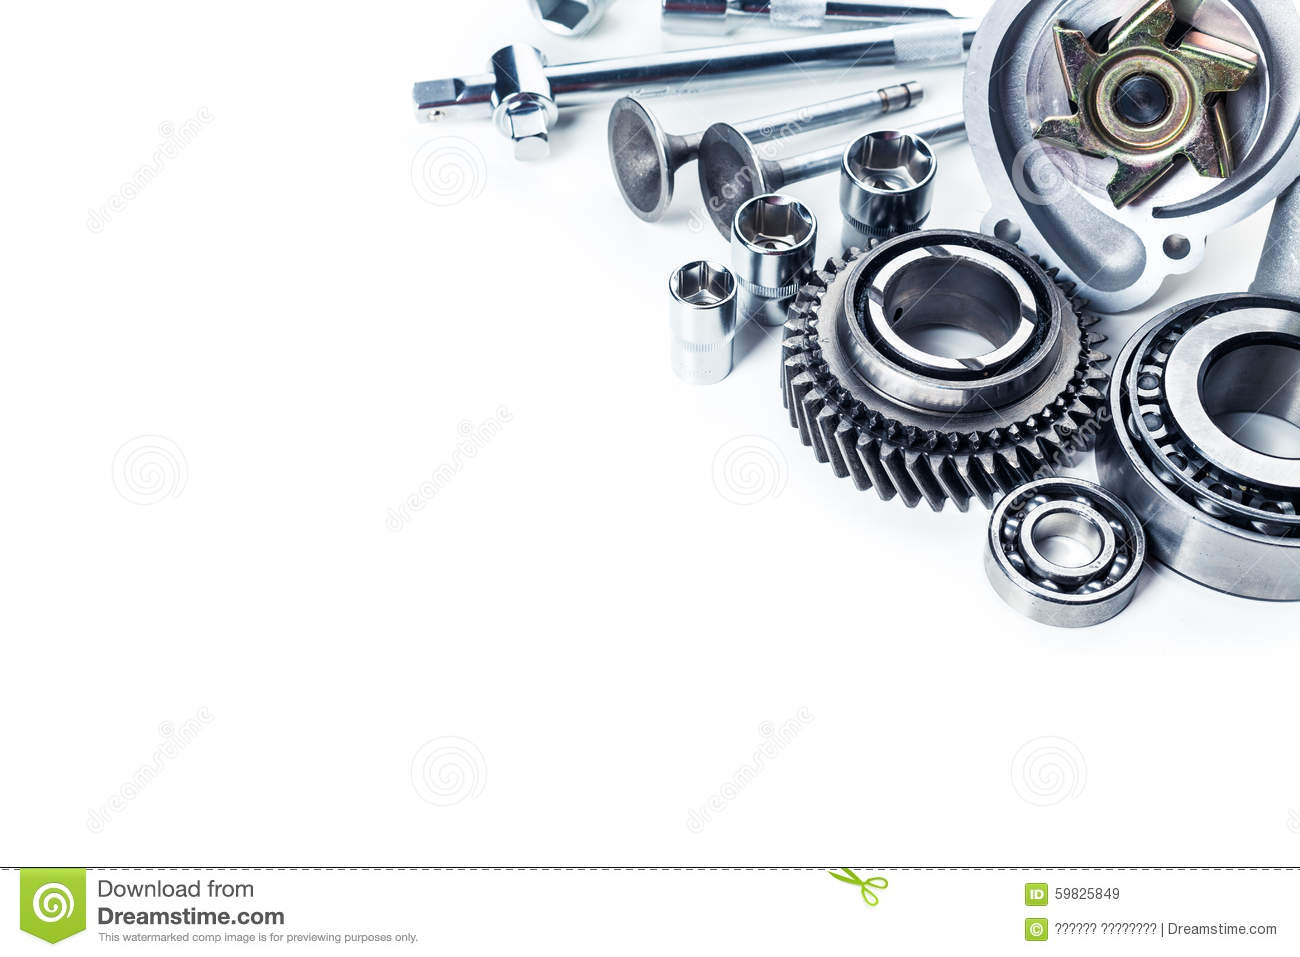 Car parts isolated stock image. Image of section, plug - 59825849